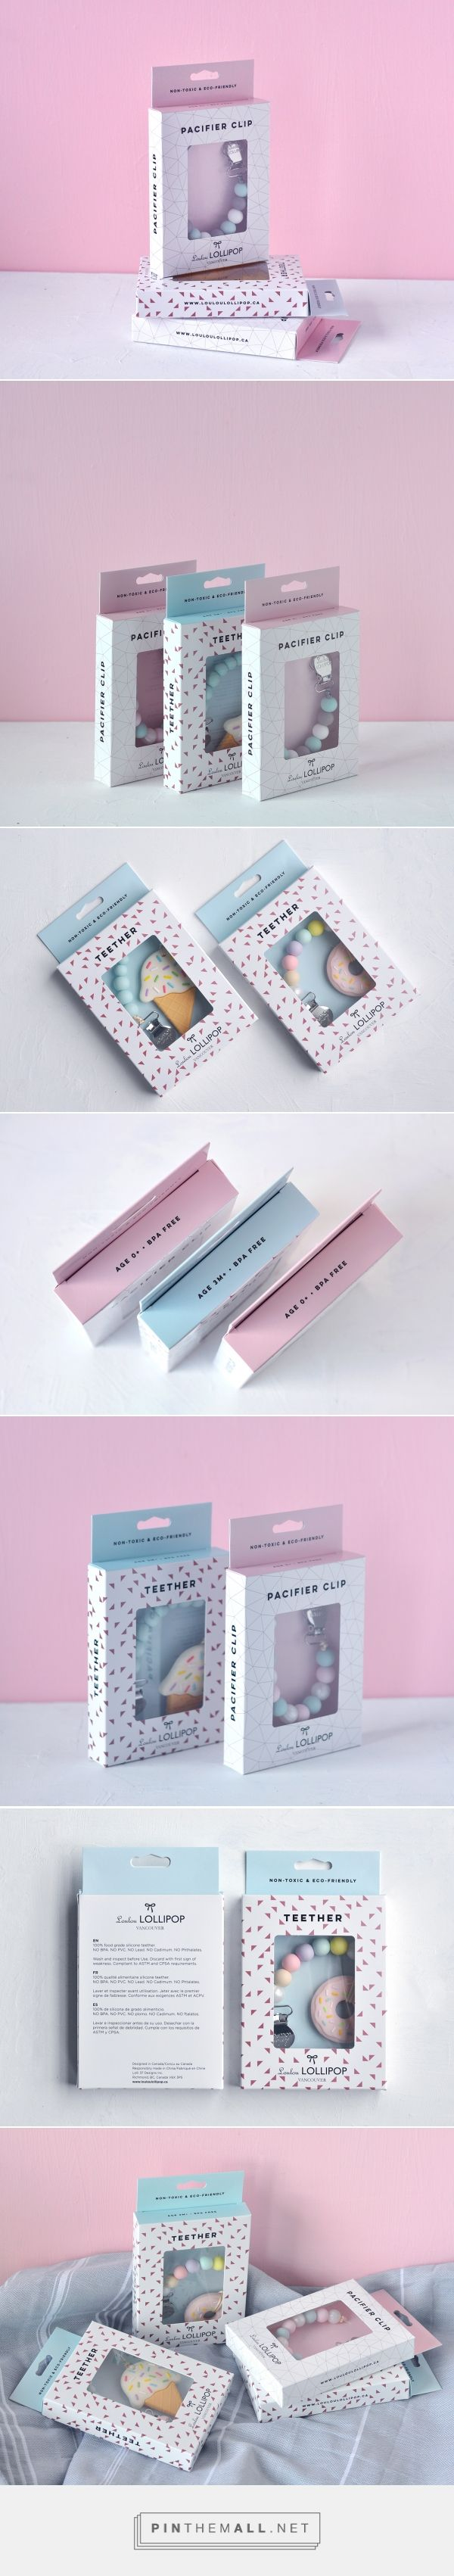 Loulou Lollipop Baby Product Packaging by Nicole Phillips | Fivestar Branding Agency – Design and Branding Agency & Curated Inspiration Gallery